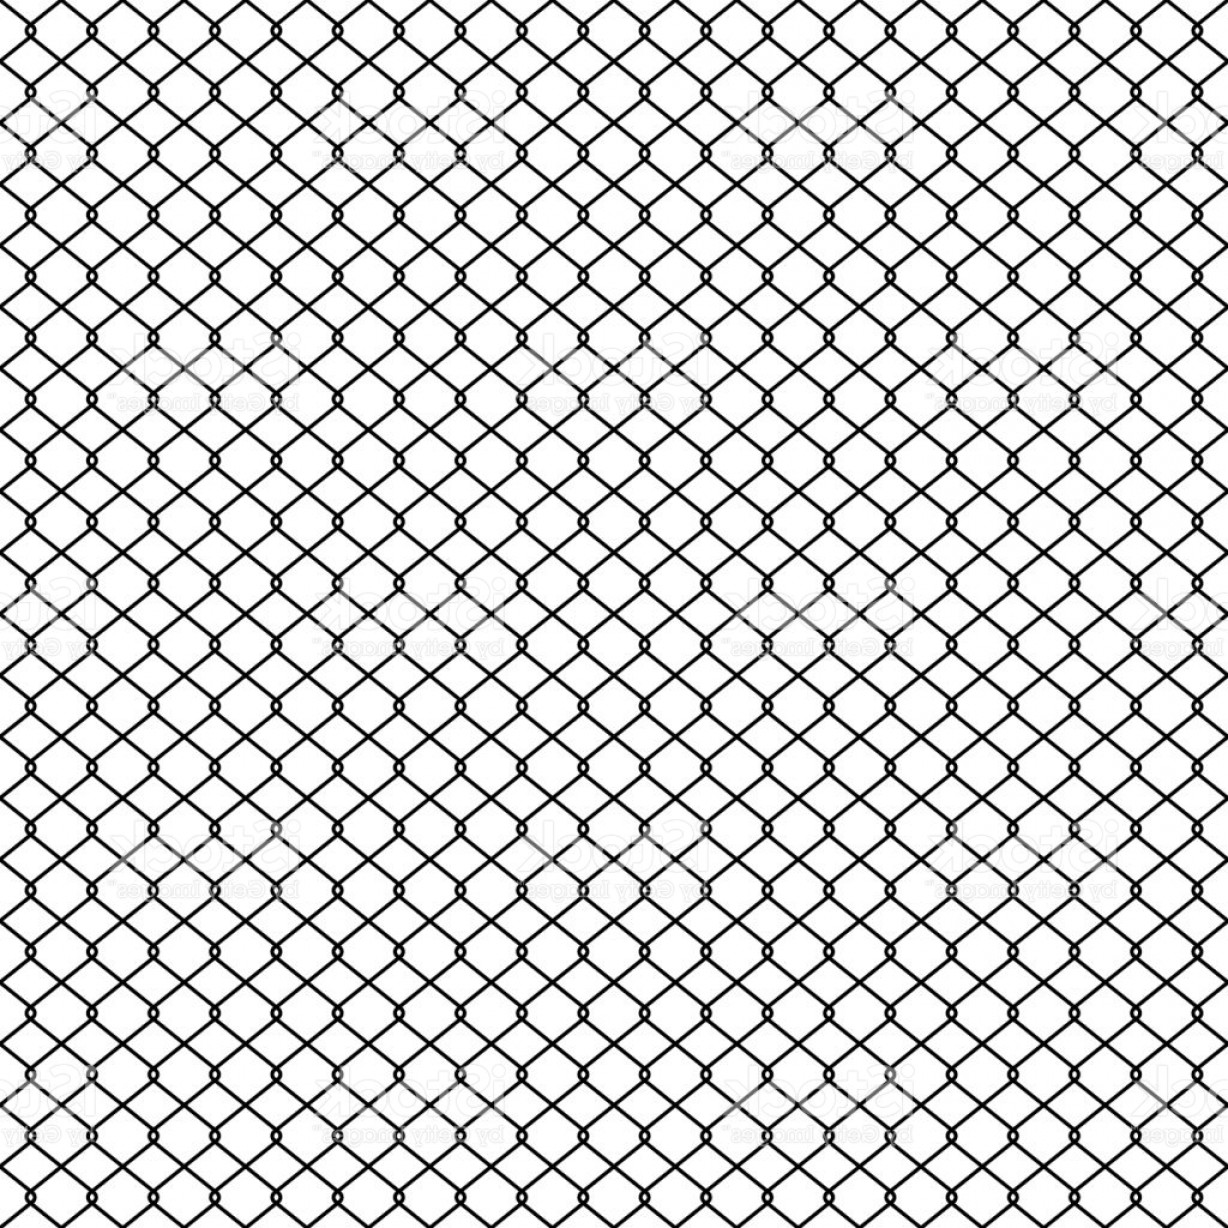 Chain Link Fence Braid Wire Fence Texture Seamless Pattern Vector Gm ...